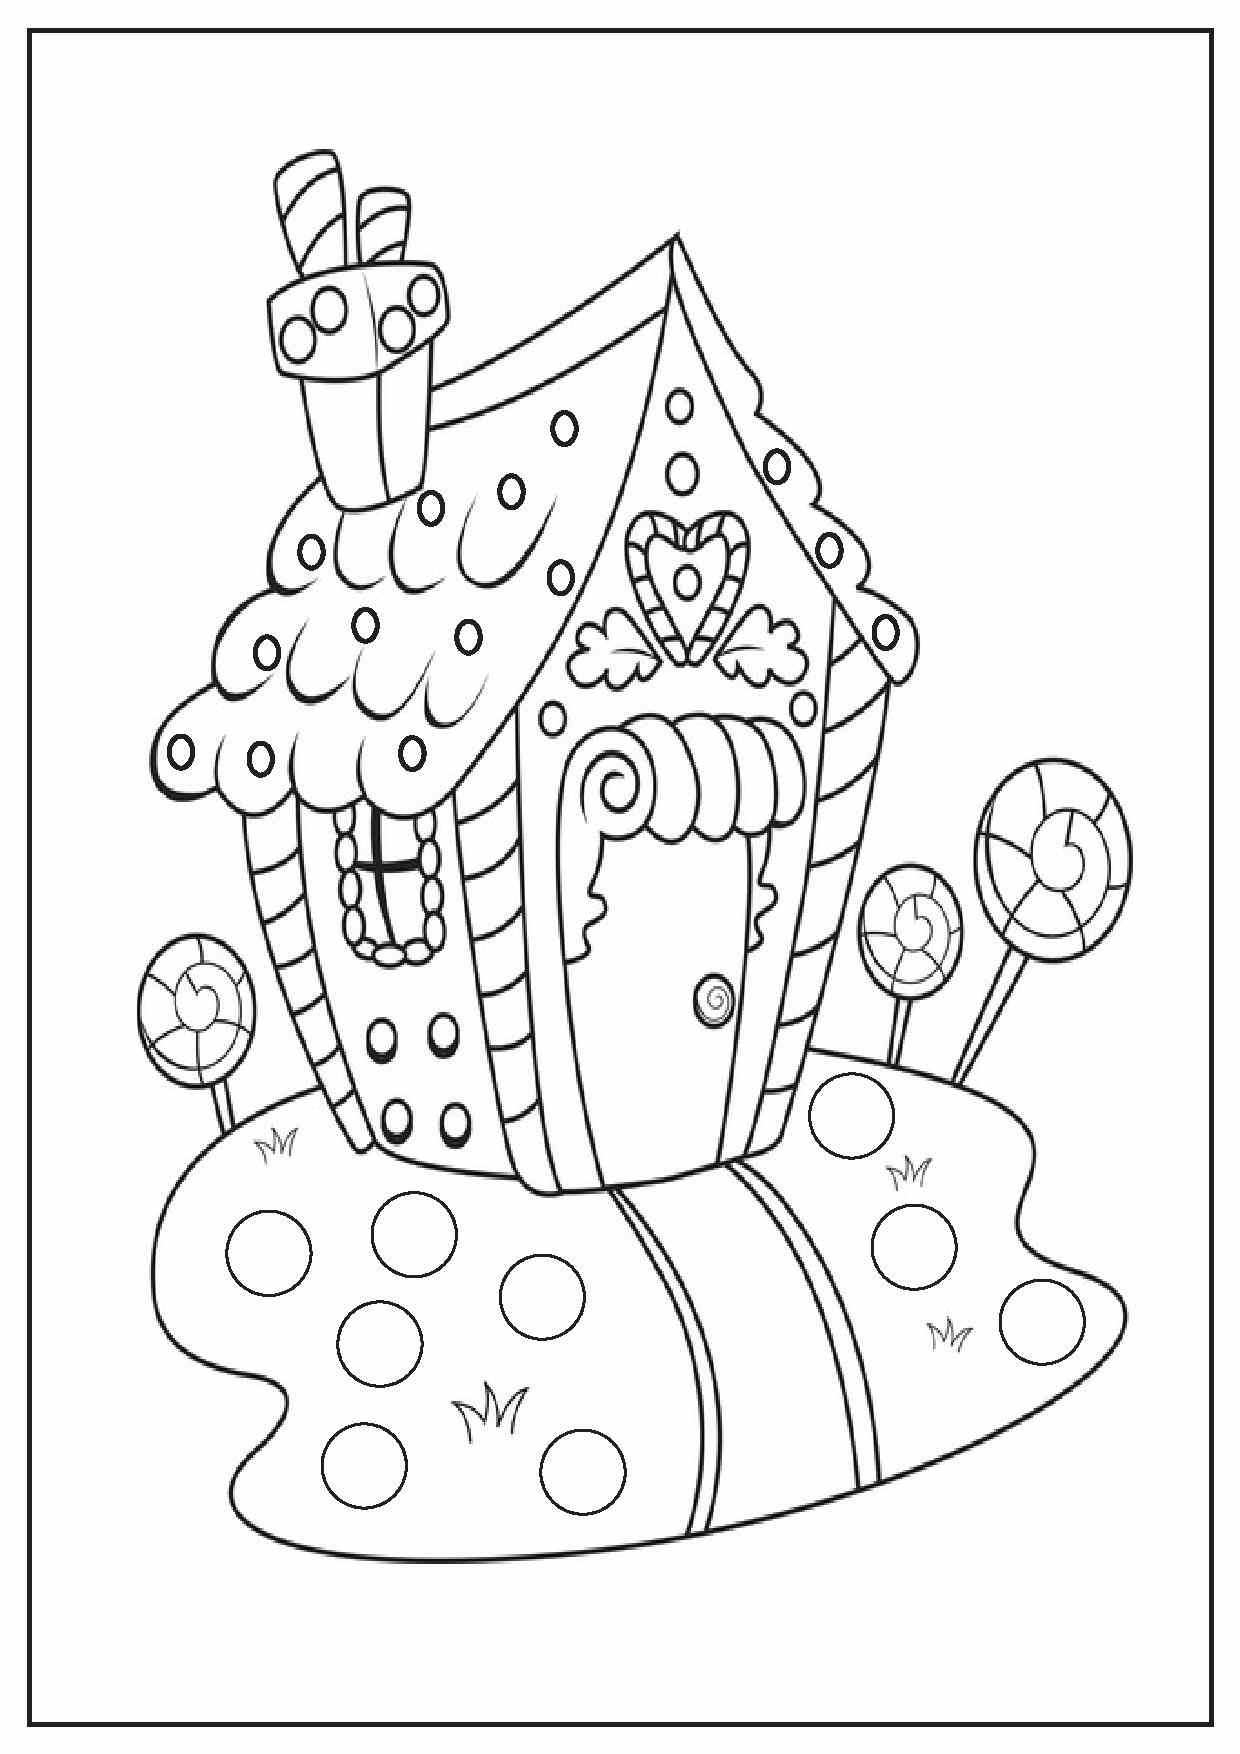 Christmas Coloring Pages For Preschoolers Printable With